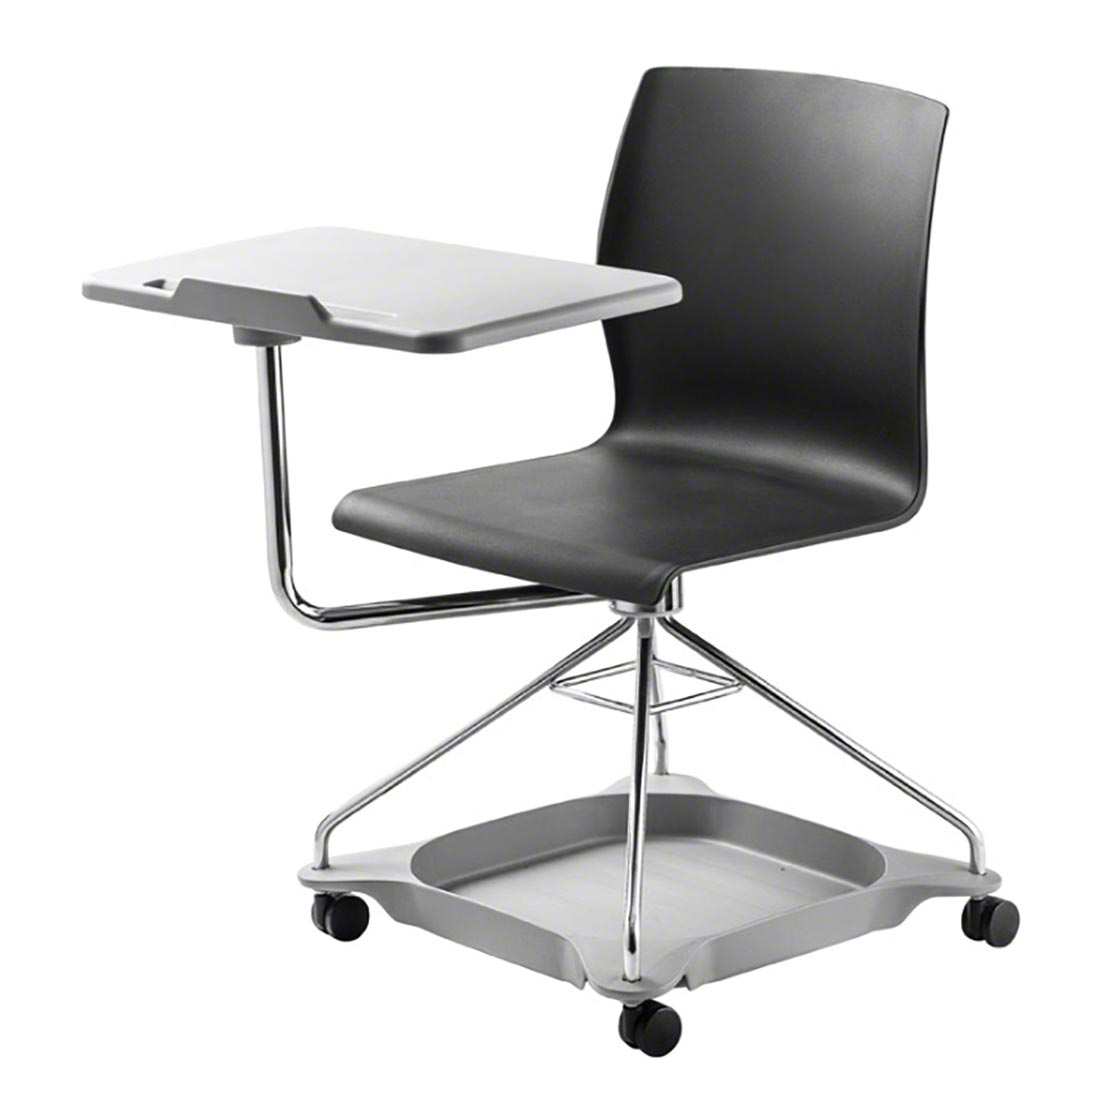 ... National Public Seating Chair on the Go Mobile Tablet Arm Chairs - NPS-COGO ...  sc 1 st  StageDrop Portable Stage u0026 Truss & National Public Seating Chair on the Go Mobile Tablet Arm Chairs ...